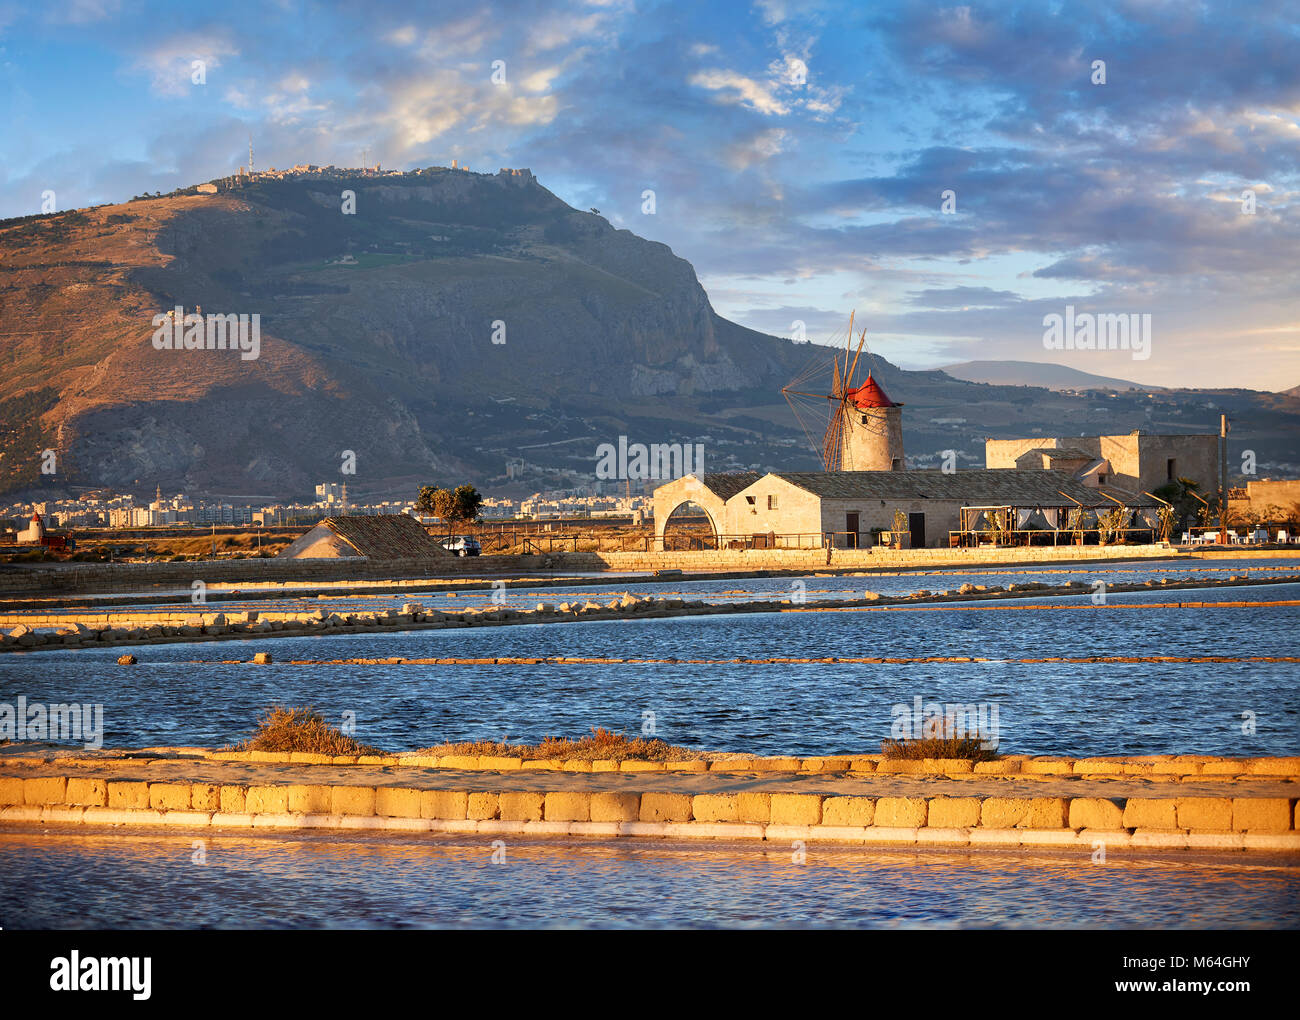 Pictures & images of the salt pans of the Nubia Salt works Museum and Nubia wind mill with Erice on the hills - Stock Image